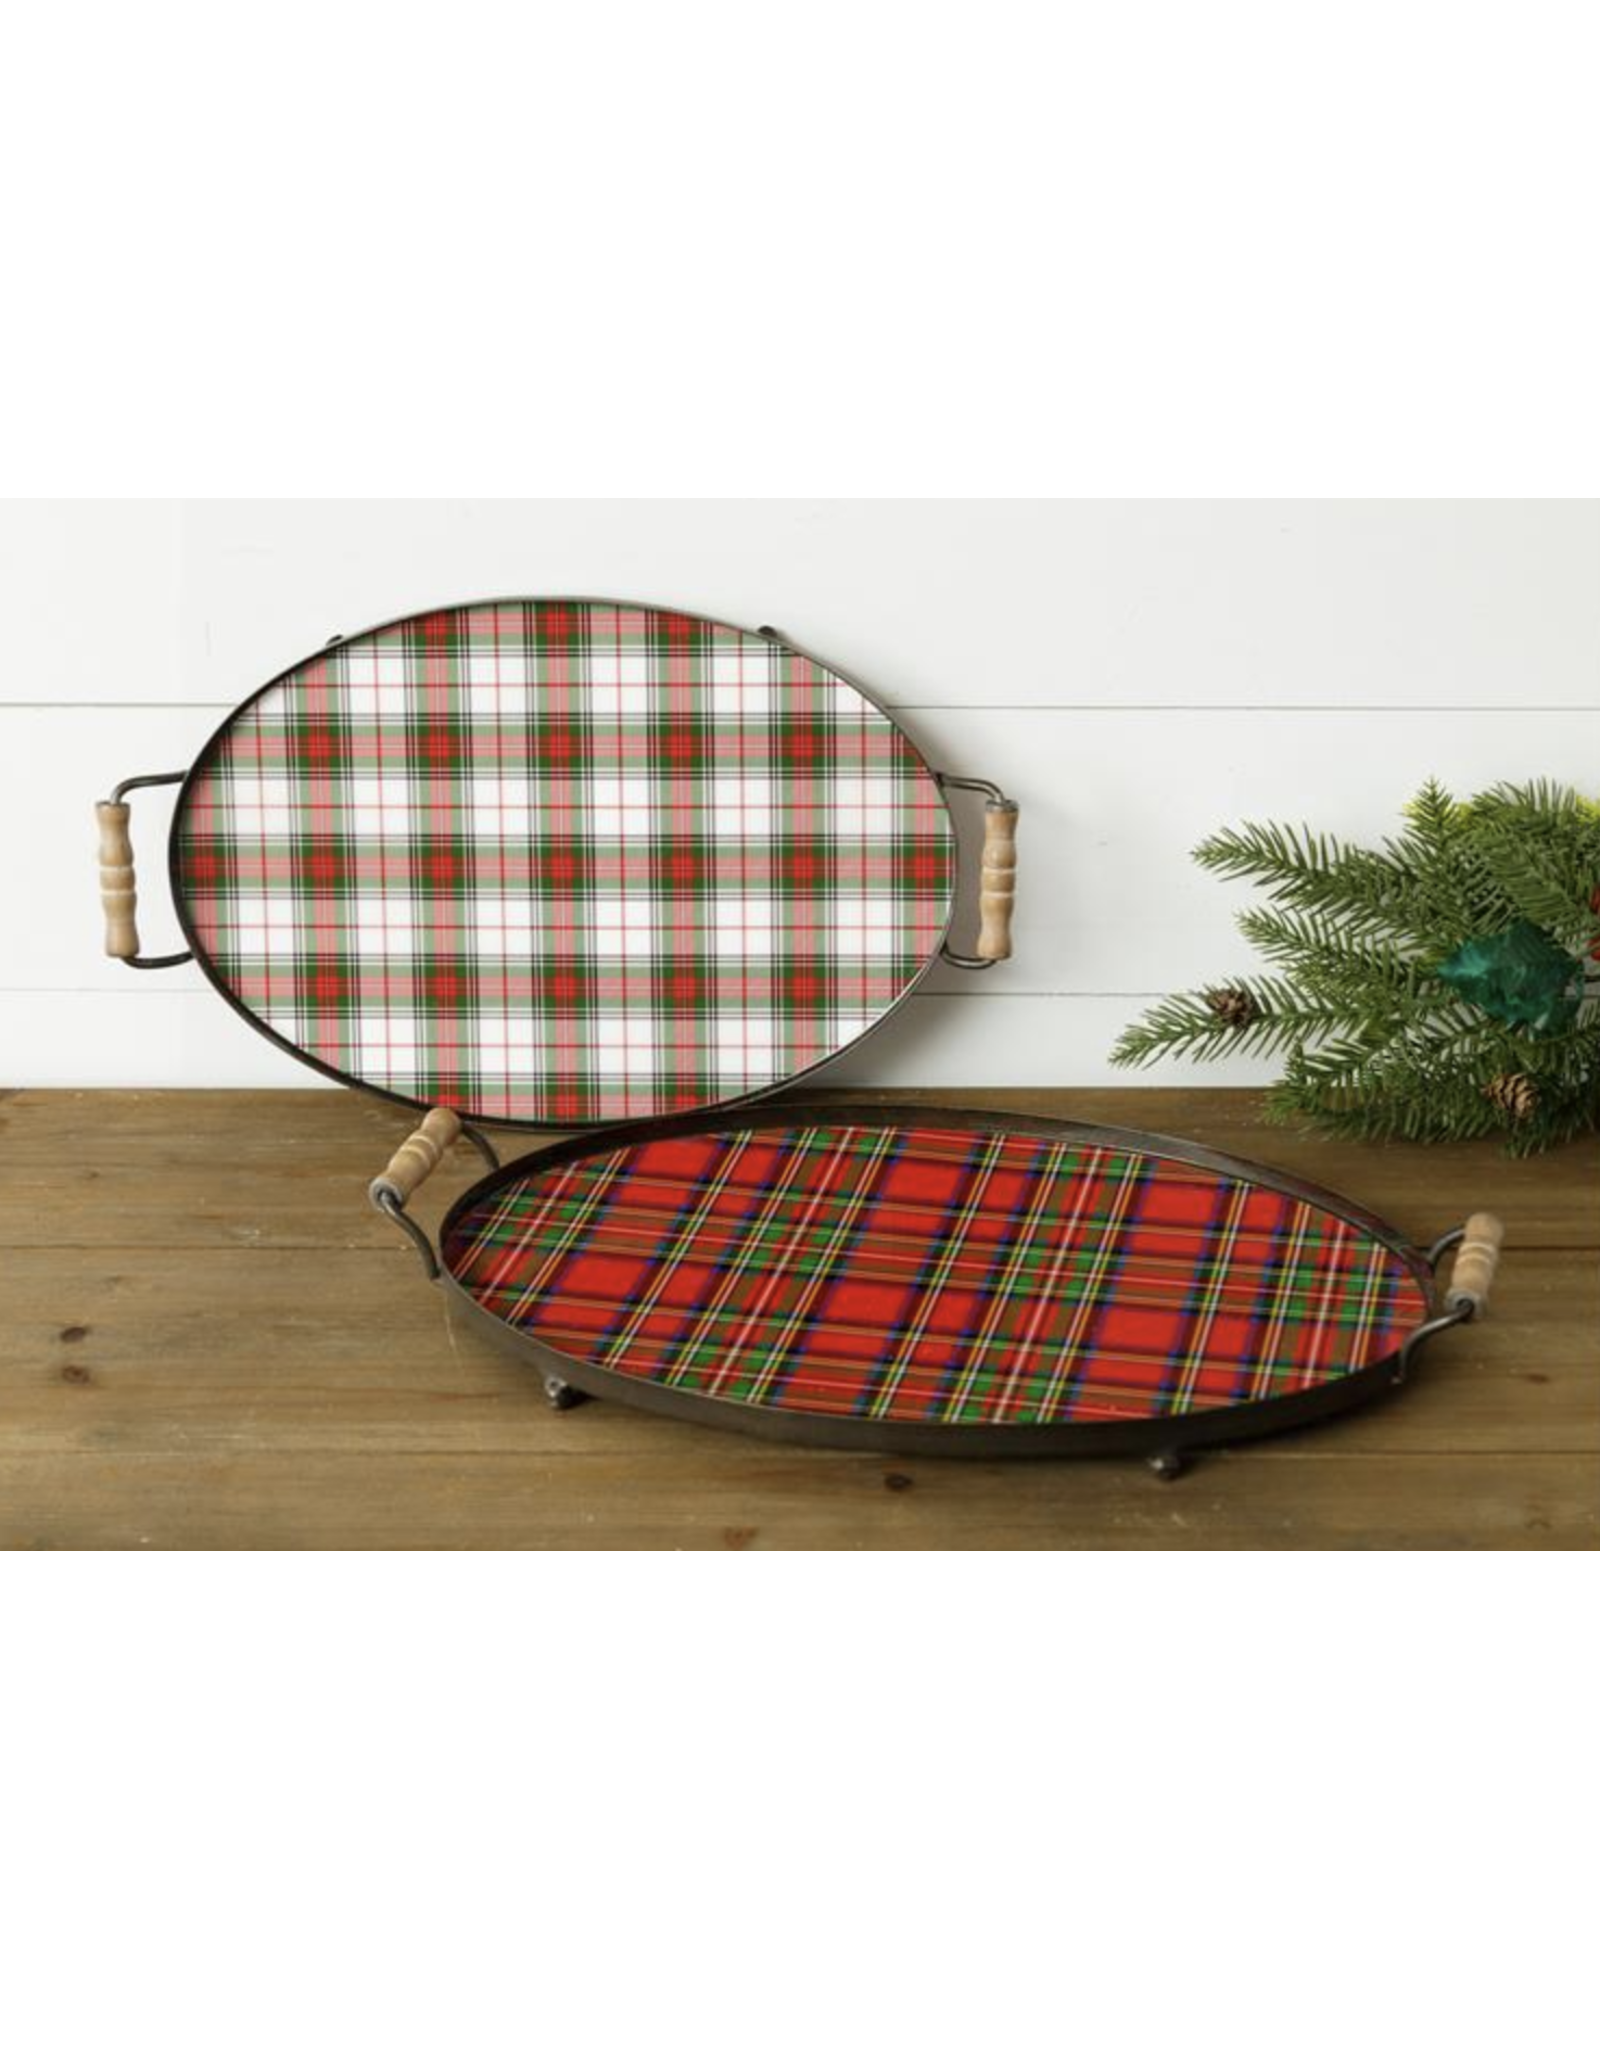 Audrey's Holiday Tartan Plaid Tray, White/Red/Green